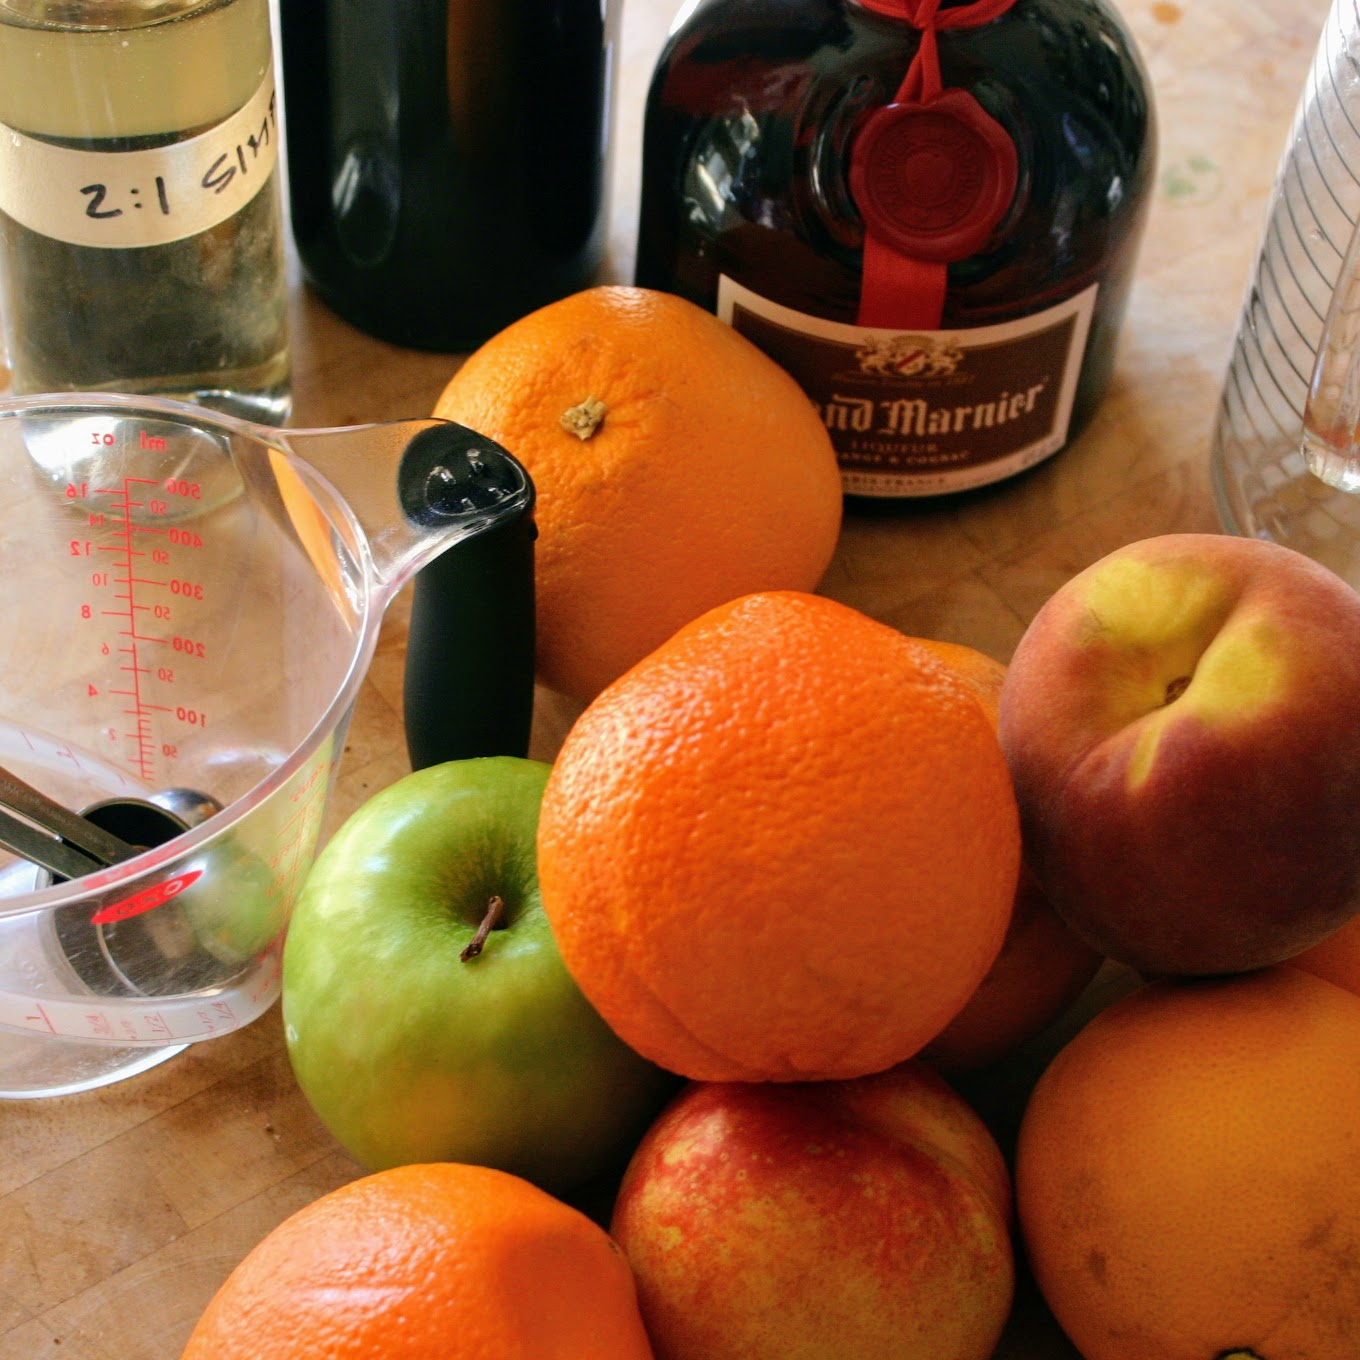 Sangria ingredients